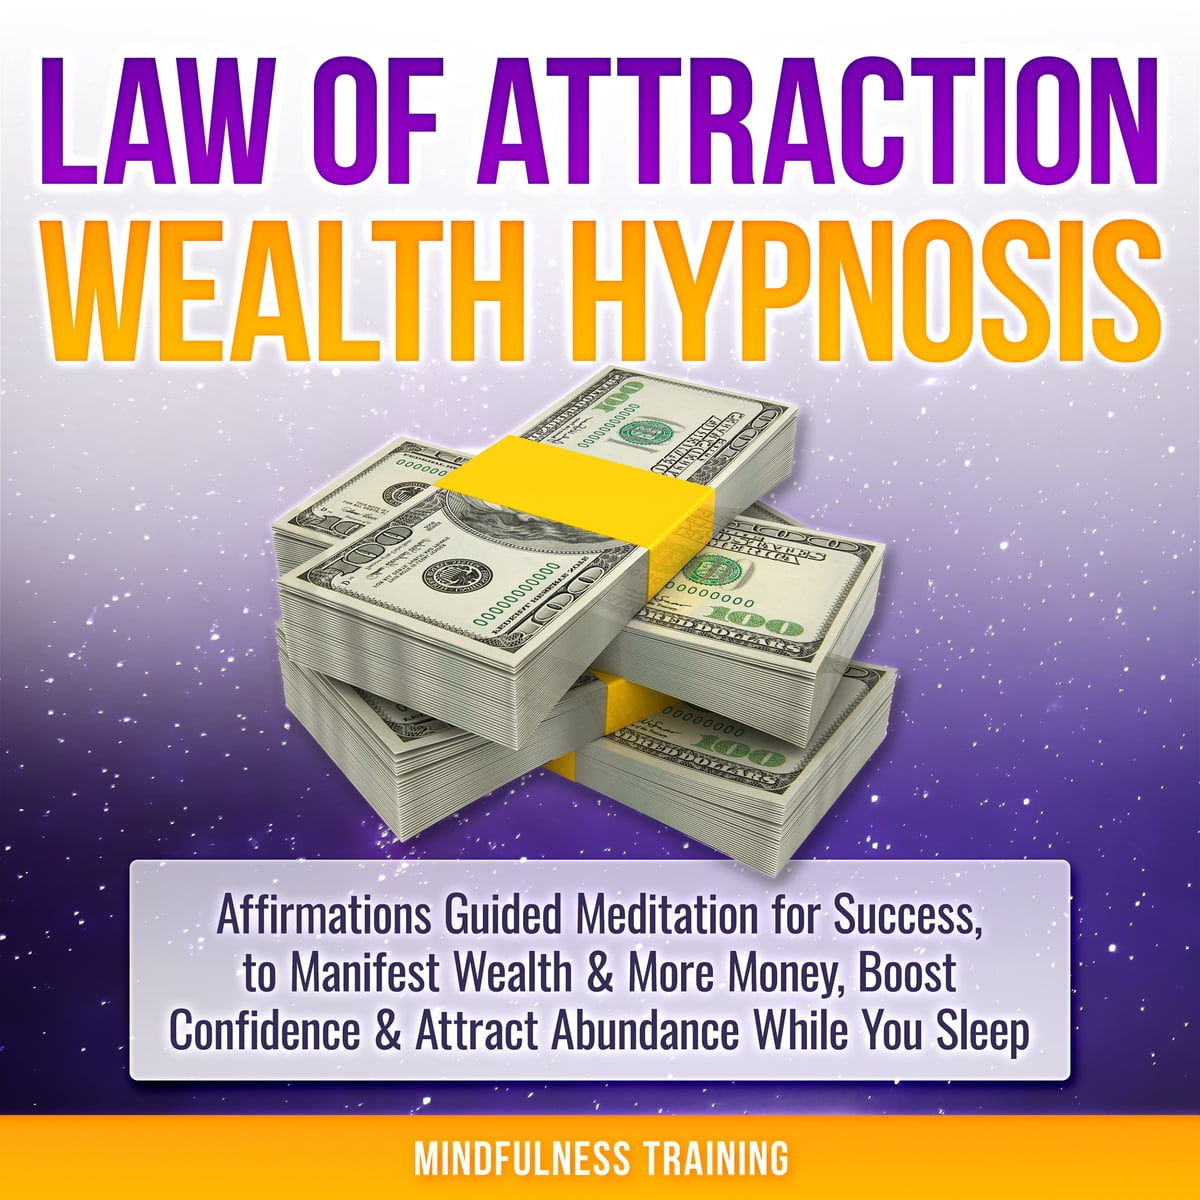 Law of Attraction Wealth Hypnosis: Affirmations Guided Meditation for  Success, to Manifest Wealth & More Money, Boost Confidence & Attract  Abundance